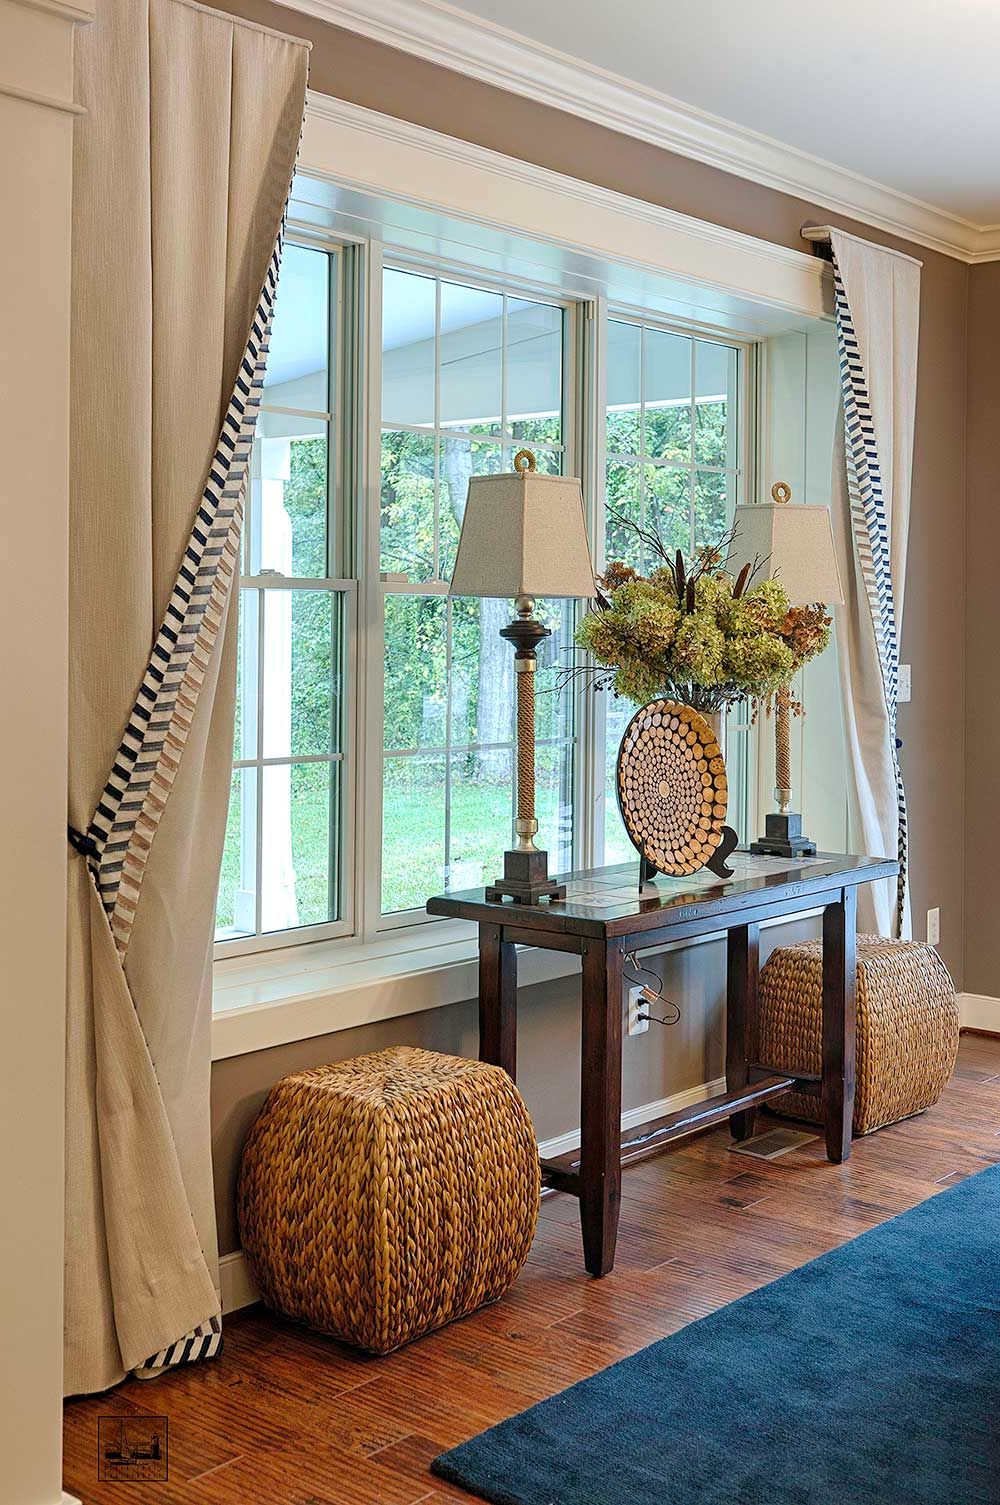 Baldwin home living room drapes pinterest living for Bay window remodel